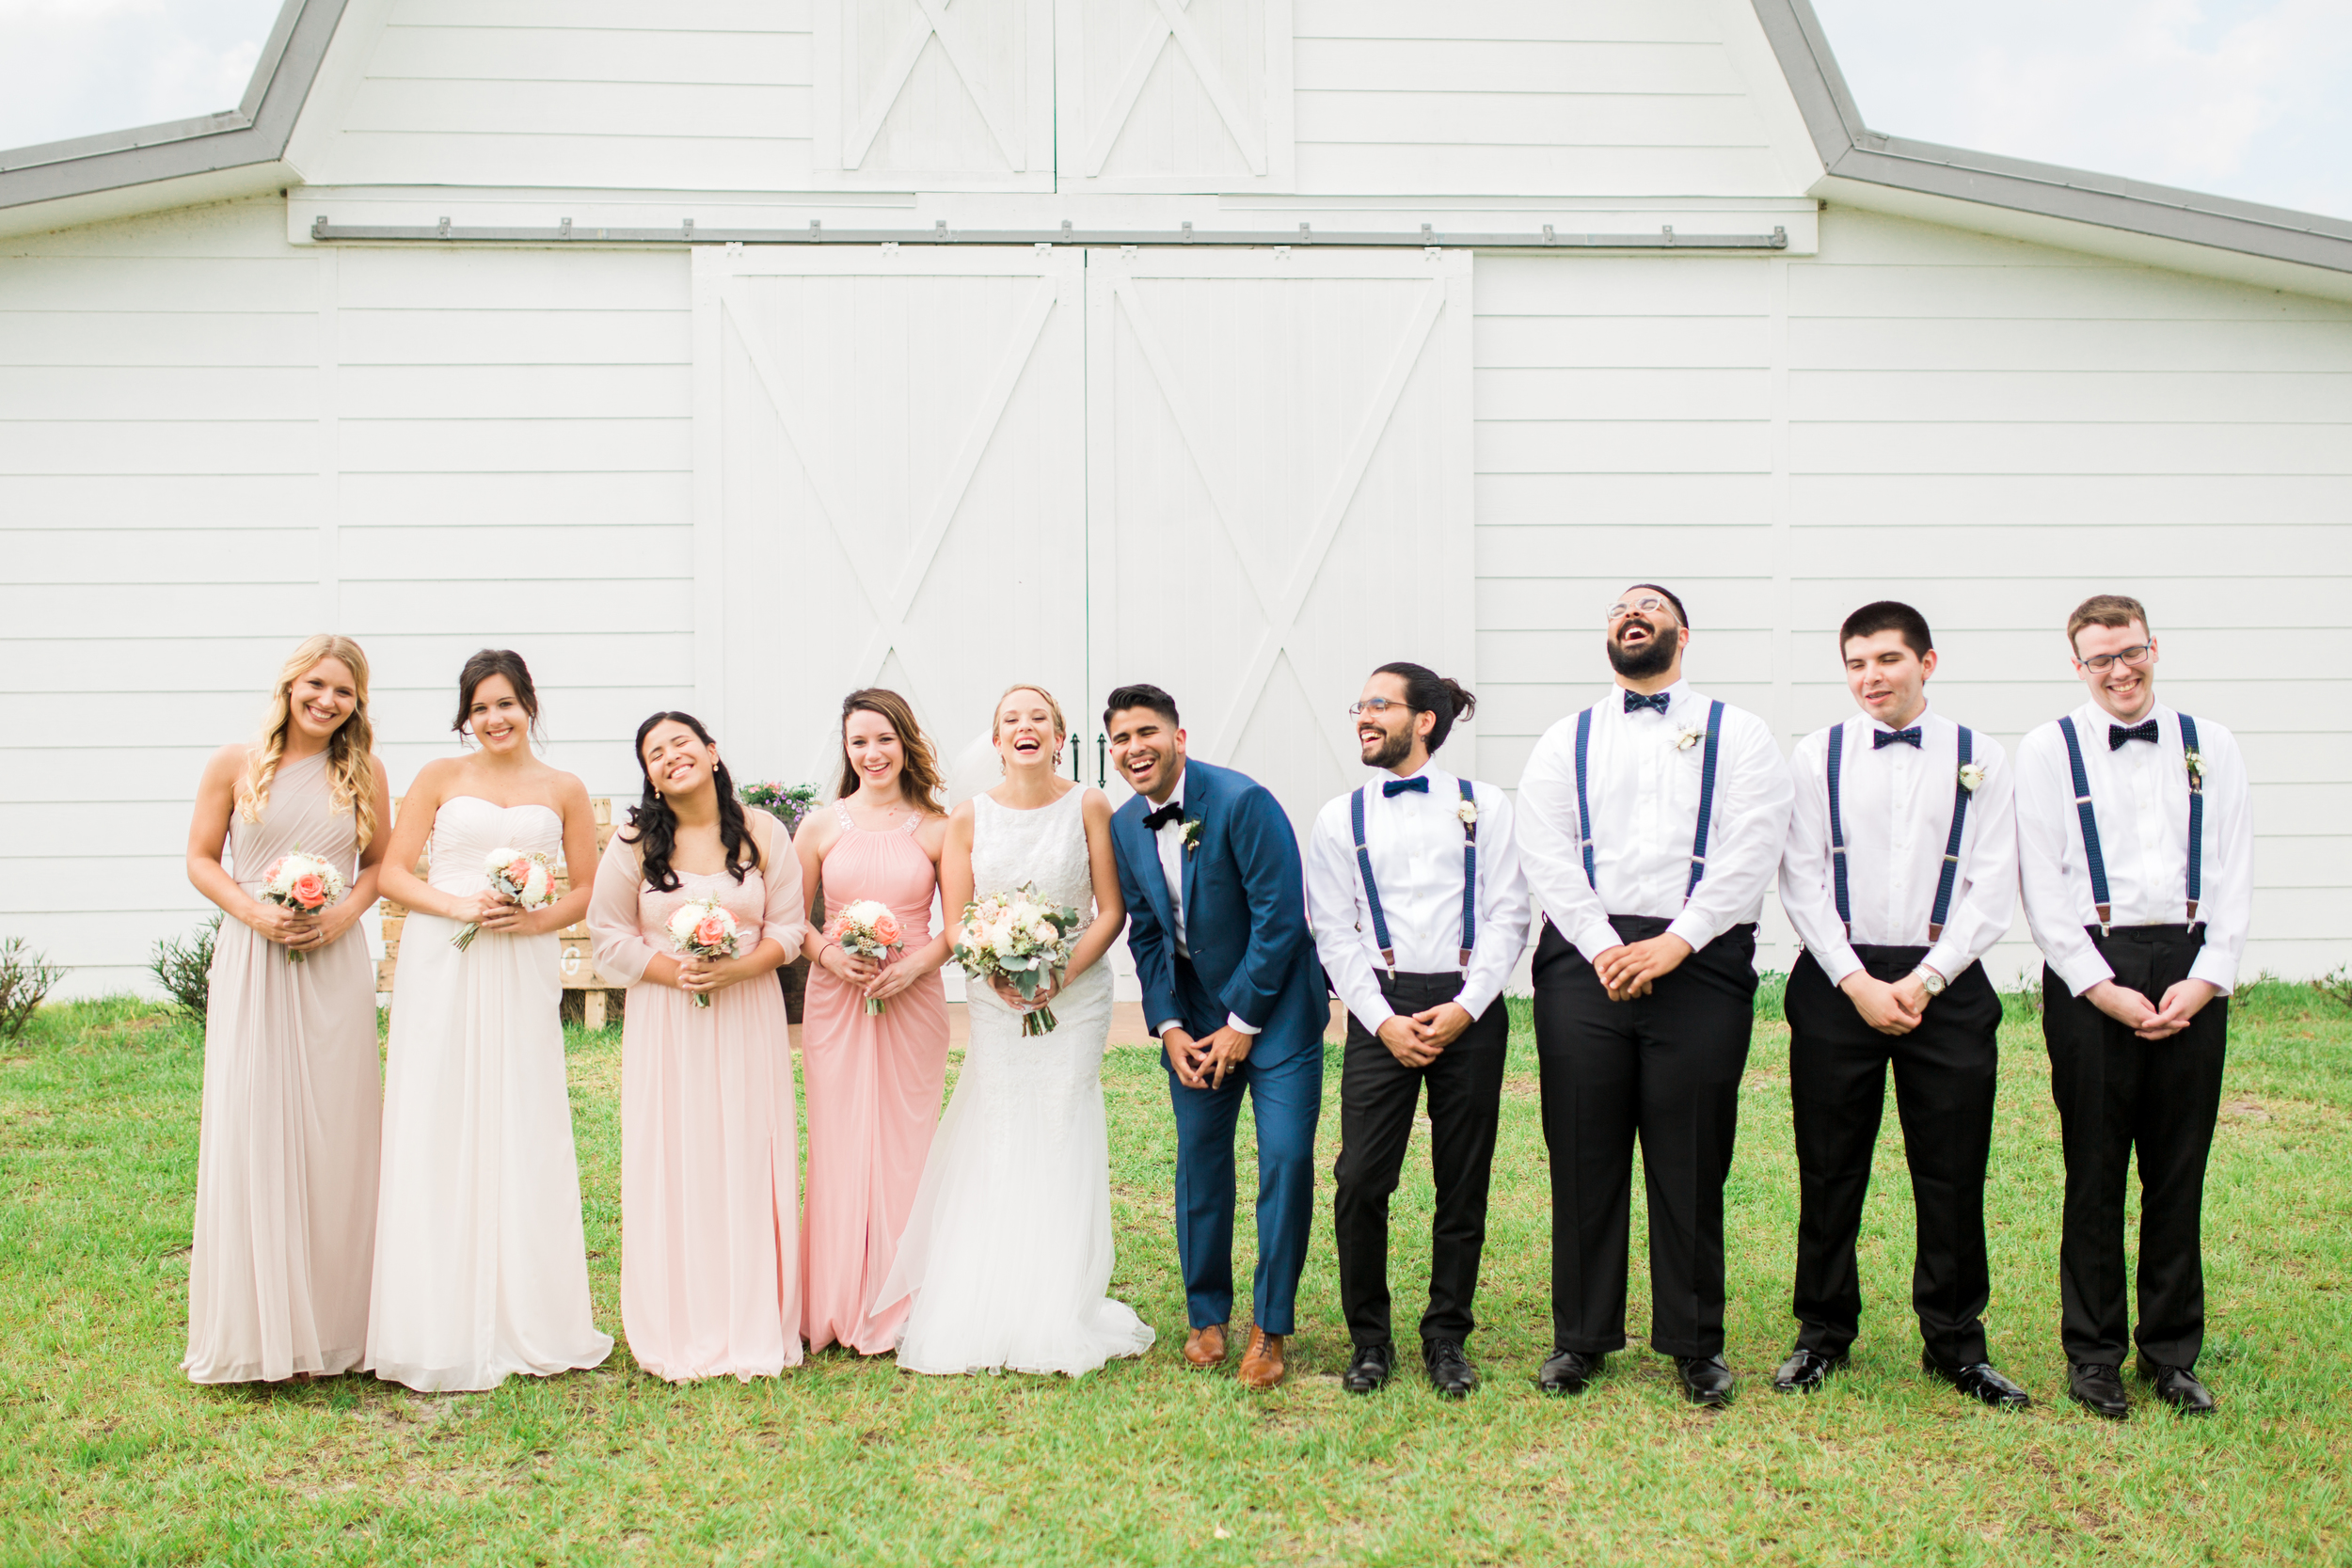 Sterling stables, brevard county FL wedding party photo